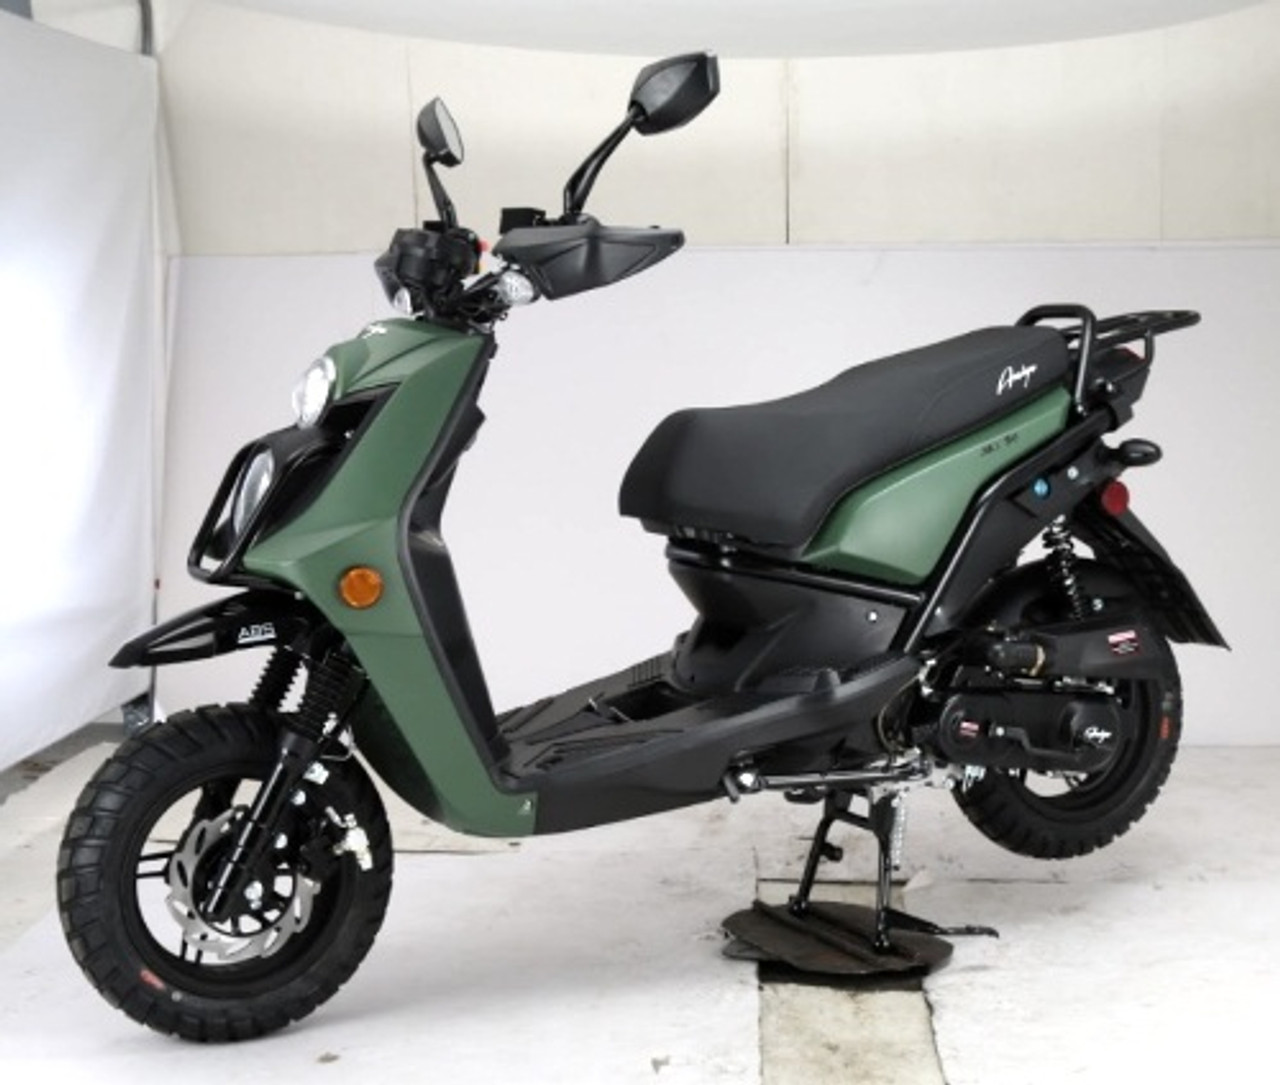 Amigo JAX-50 8.5 HP Gas Moped Scooter, 4-Stroke, Air Cooled, Fully Automatic, Electric and Kick Start (AMIGO-JAX-50)